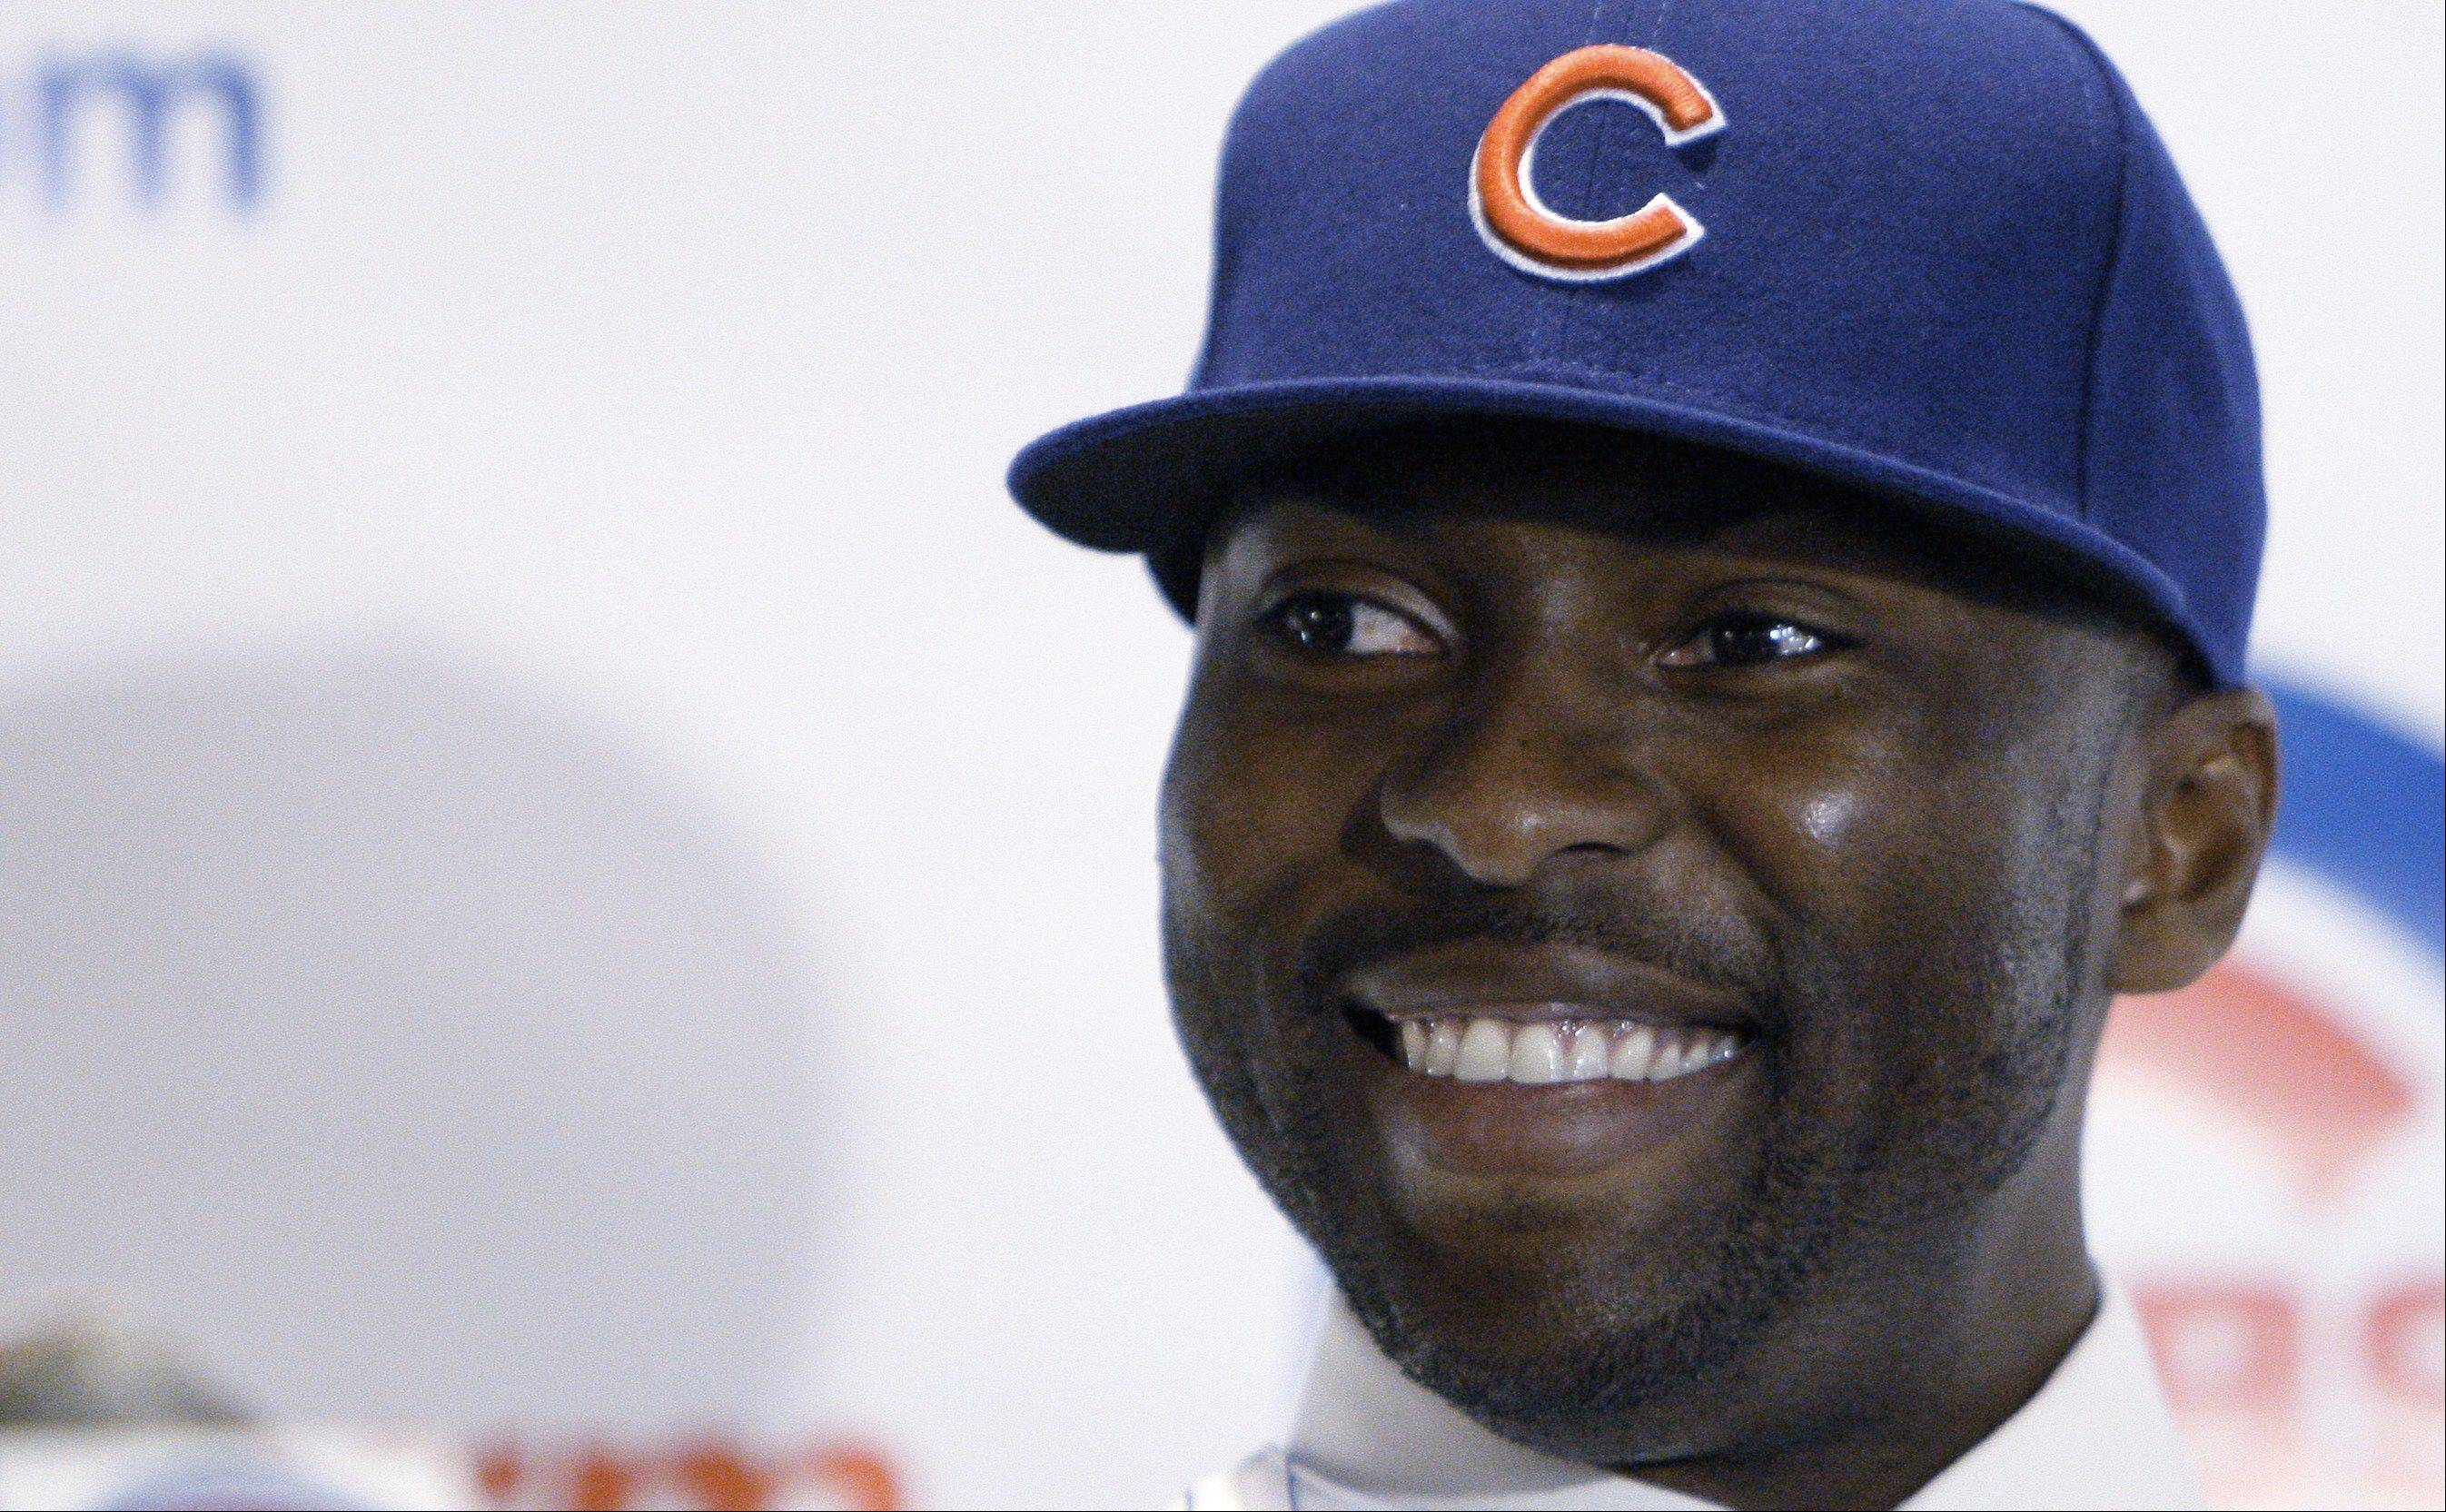 Chicago Cubs outfielder Milton Bradley smiles as he is introduced as the newest member of the team during a news conference Thursday, Jan. 8, 2009 in Chicago. Bradley, formerly with the Texas Rangers, signed a three-year contract with the Cubs. (AP Photo/M. Spencer Green)